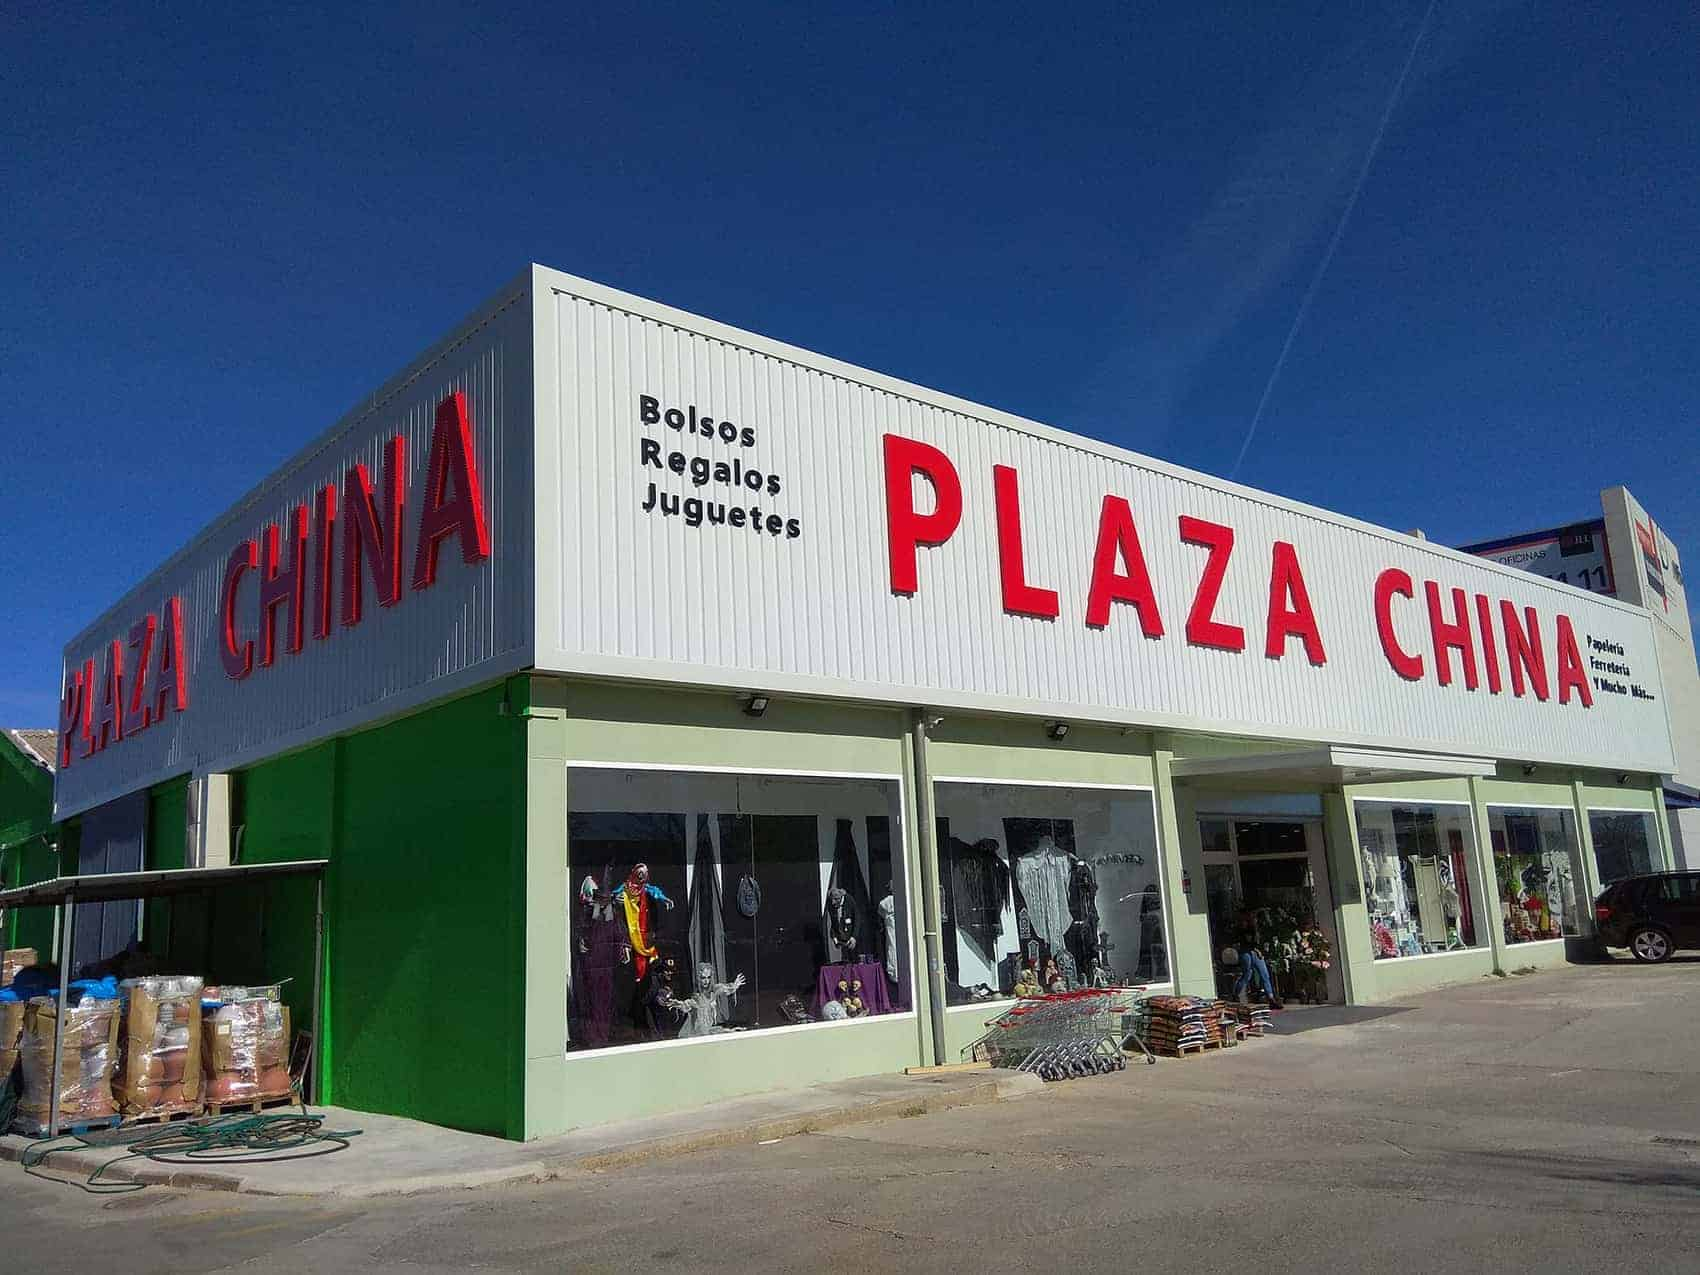 From small shops to large commercial areas